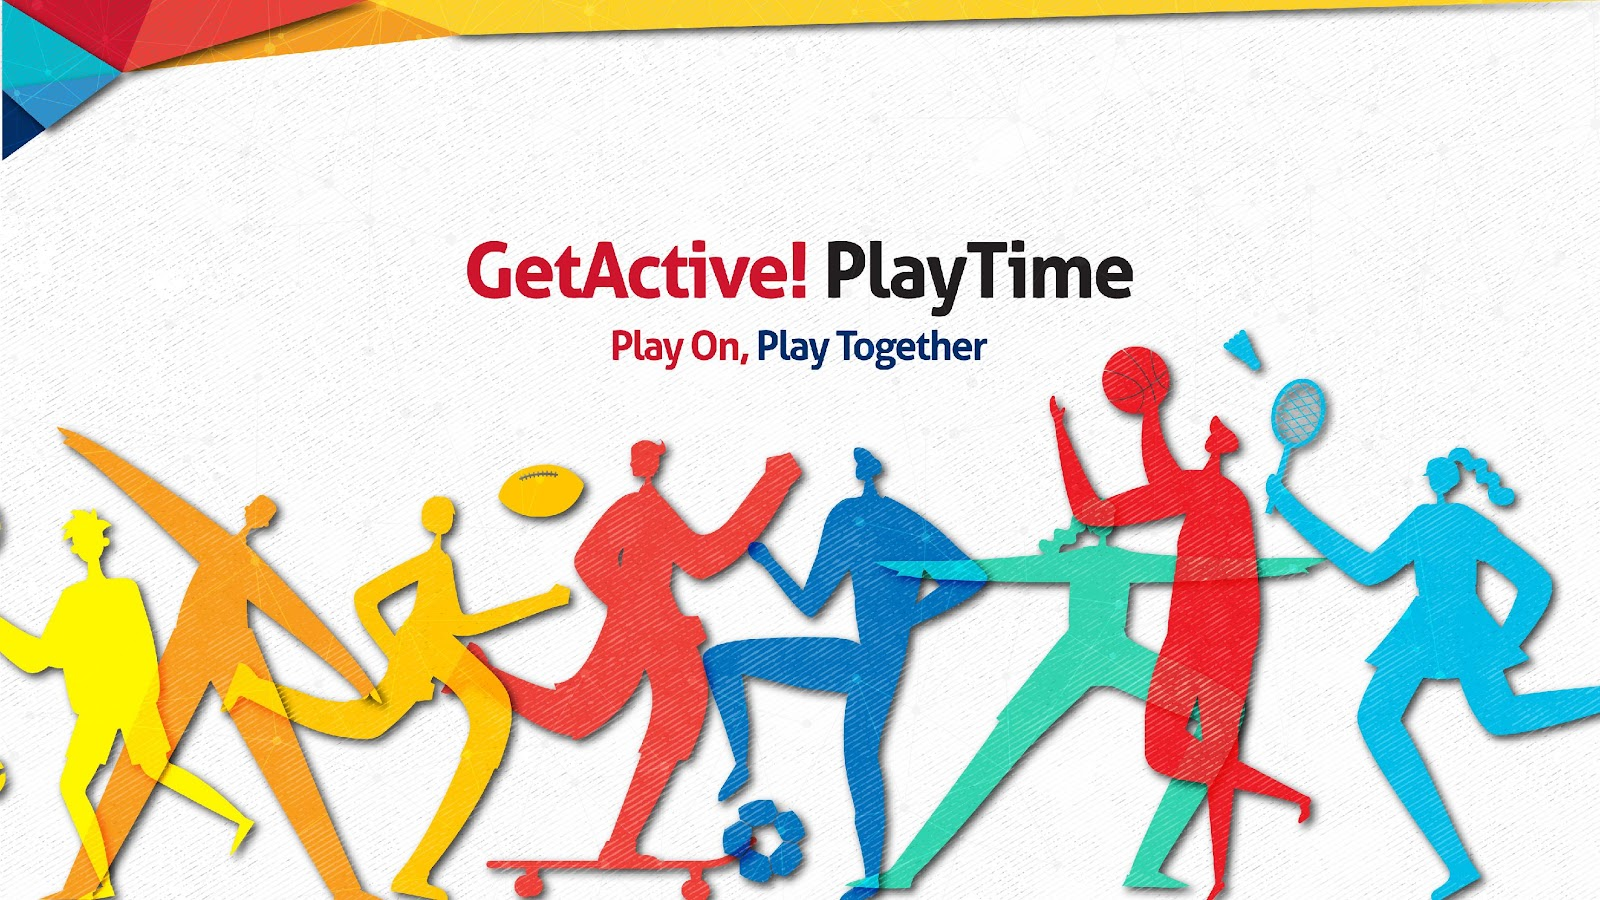 It's GetActive! Playtime, and everyone is invited!